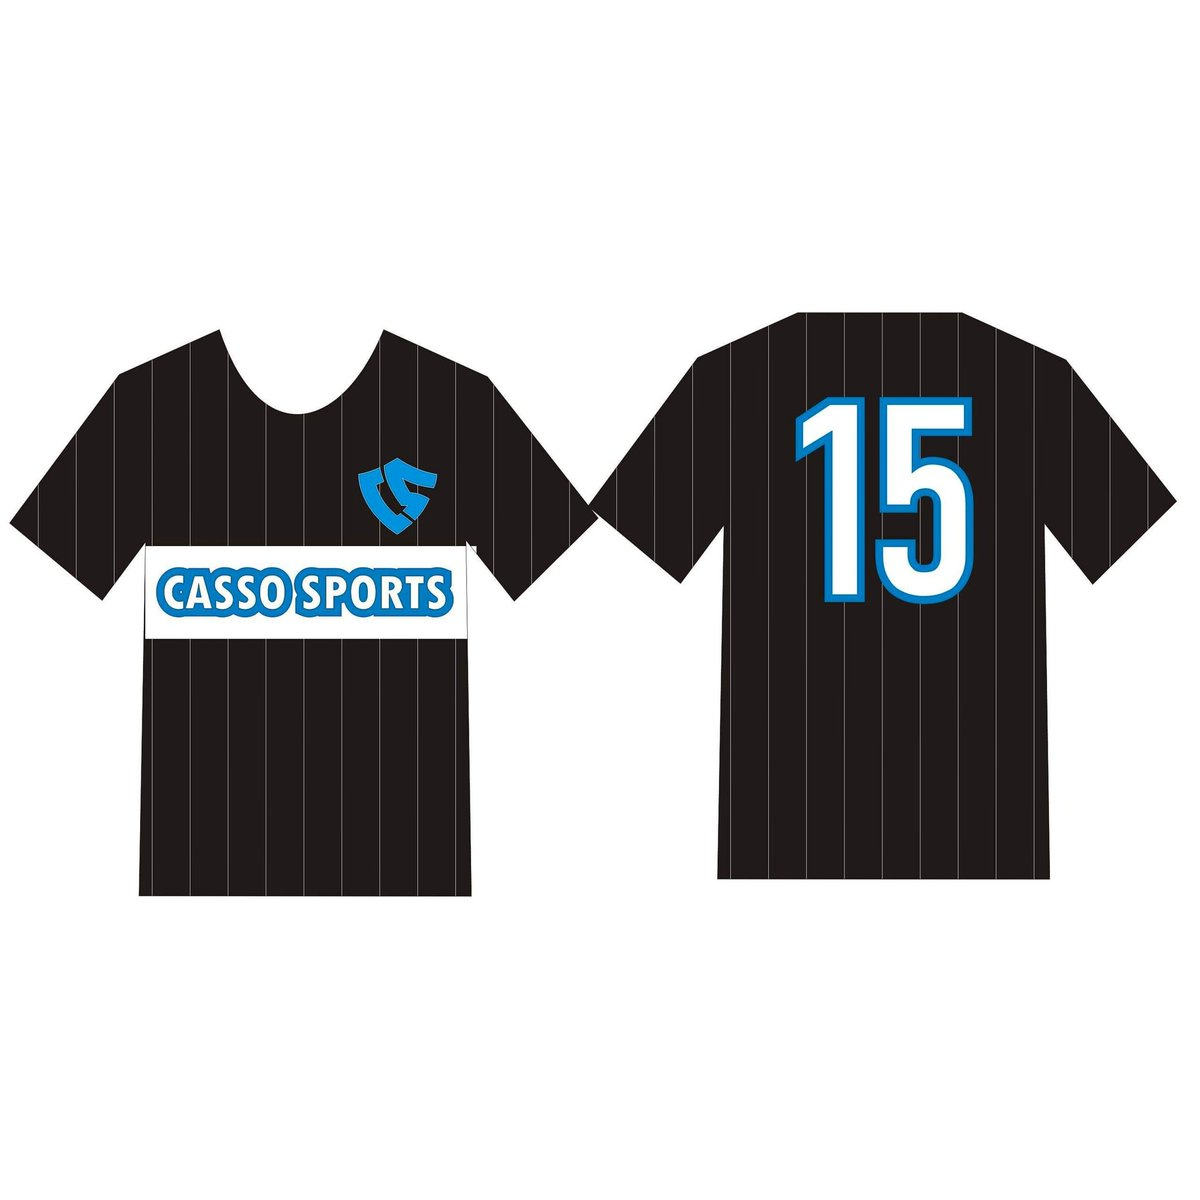 Get  your Team T-shirts  with your own logo and player name at wholesale  Email: info@cassosports.com  #tshirtdesign #tshirts #tshirt #tshirtshop #tshirtmurah #tshirtslovers #tshirtstore #tshirtprinting